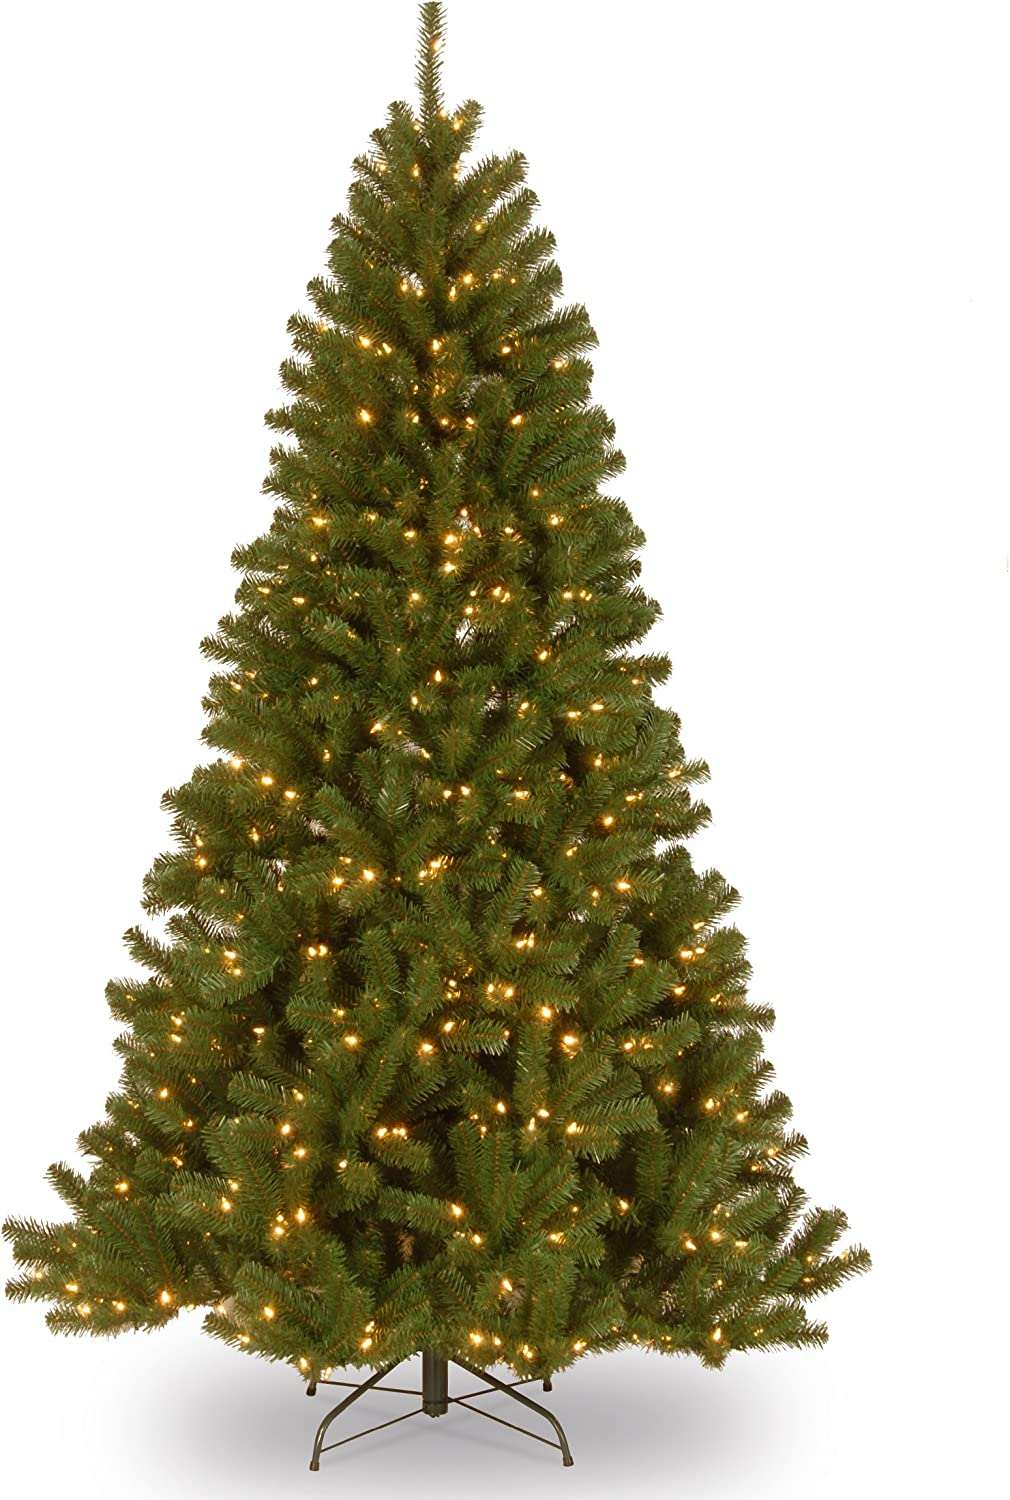 National Tree 7 Foot North Valley Spruce Tree with 500 Clear Lights, Hinged (NRV7-300-70), 7'